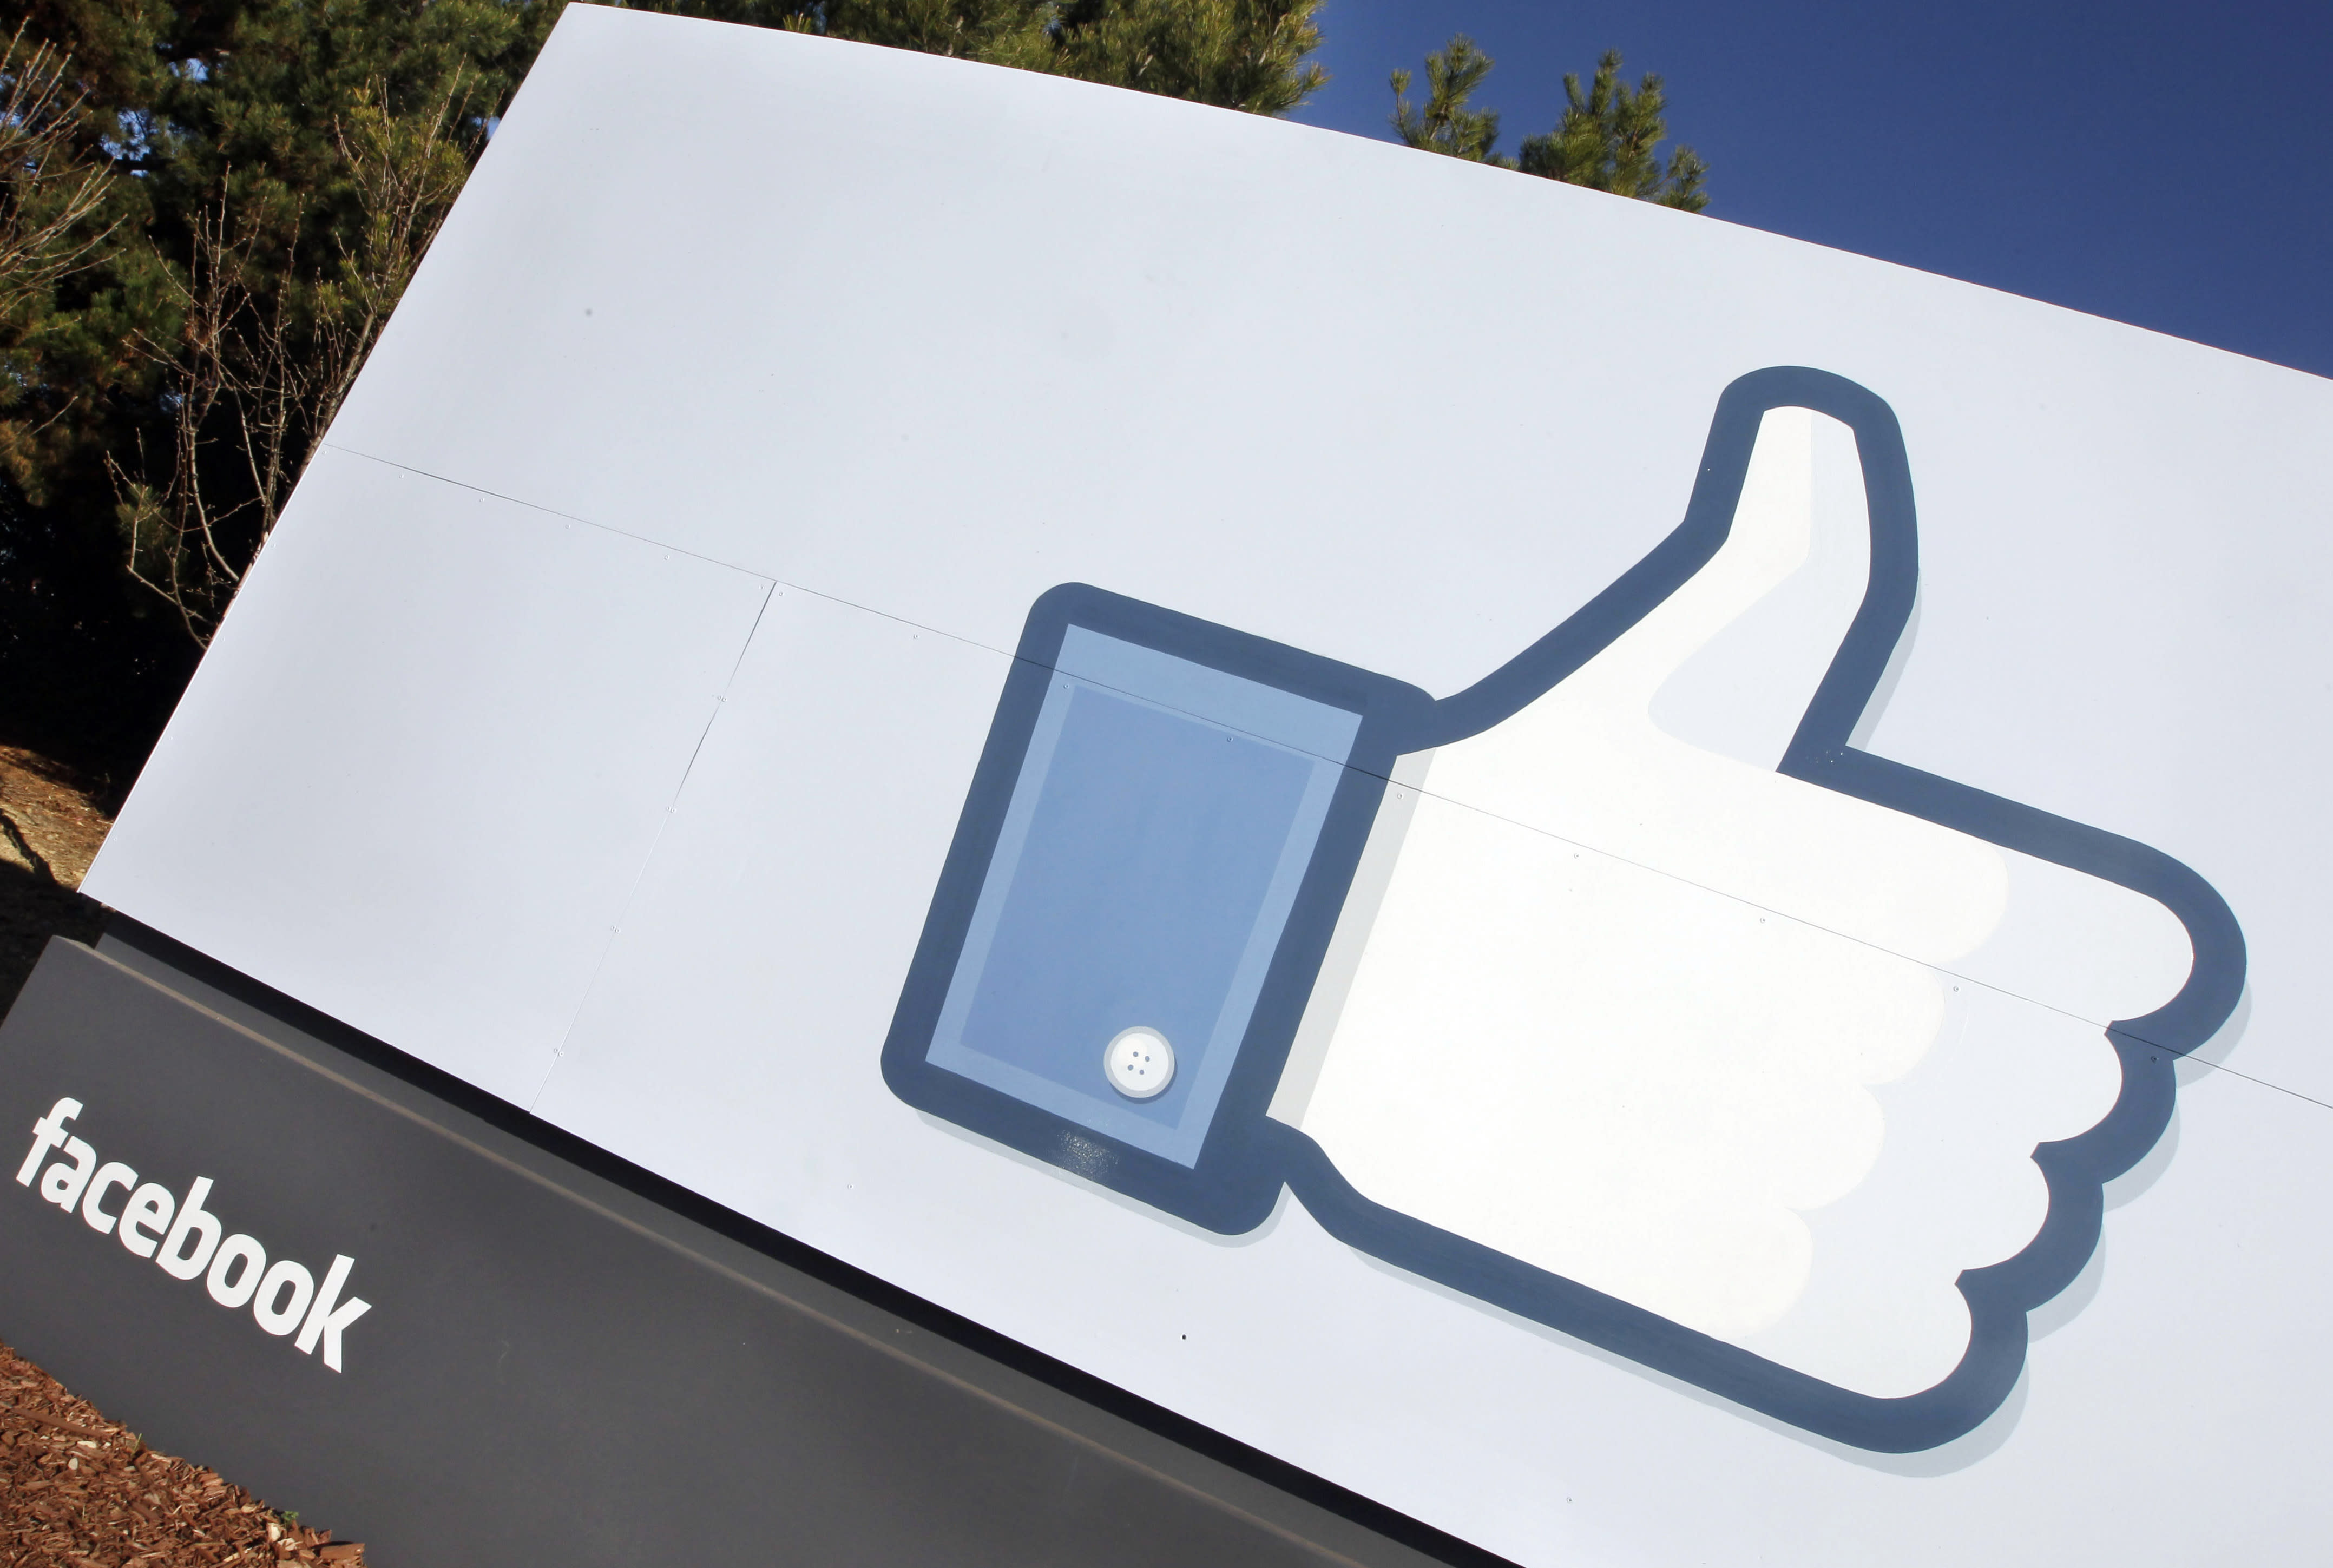 """FILE - A Jan. 12, 2012 file photo, shows the Facebook """"like"""" icon displayed outside of Facebook's headquarters in Menlo Park, Calif. The """"like"""" button on Facebook seems like a relatively clear way to express your support for something, but a federal judge says that doesn't mean clicking it is constitutionally protected speech. (AP Photo/Paul Sakuma)"""